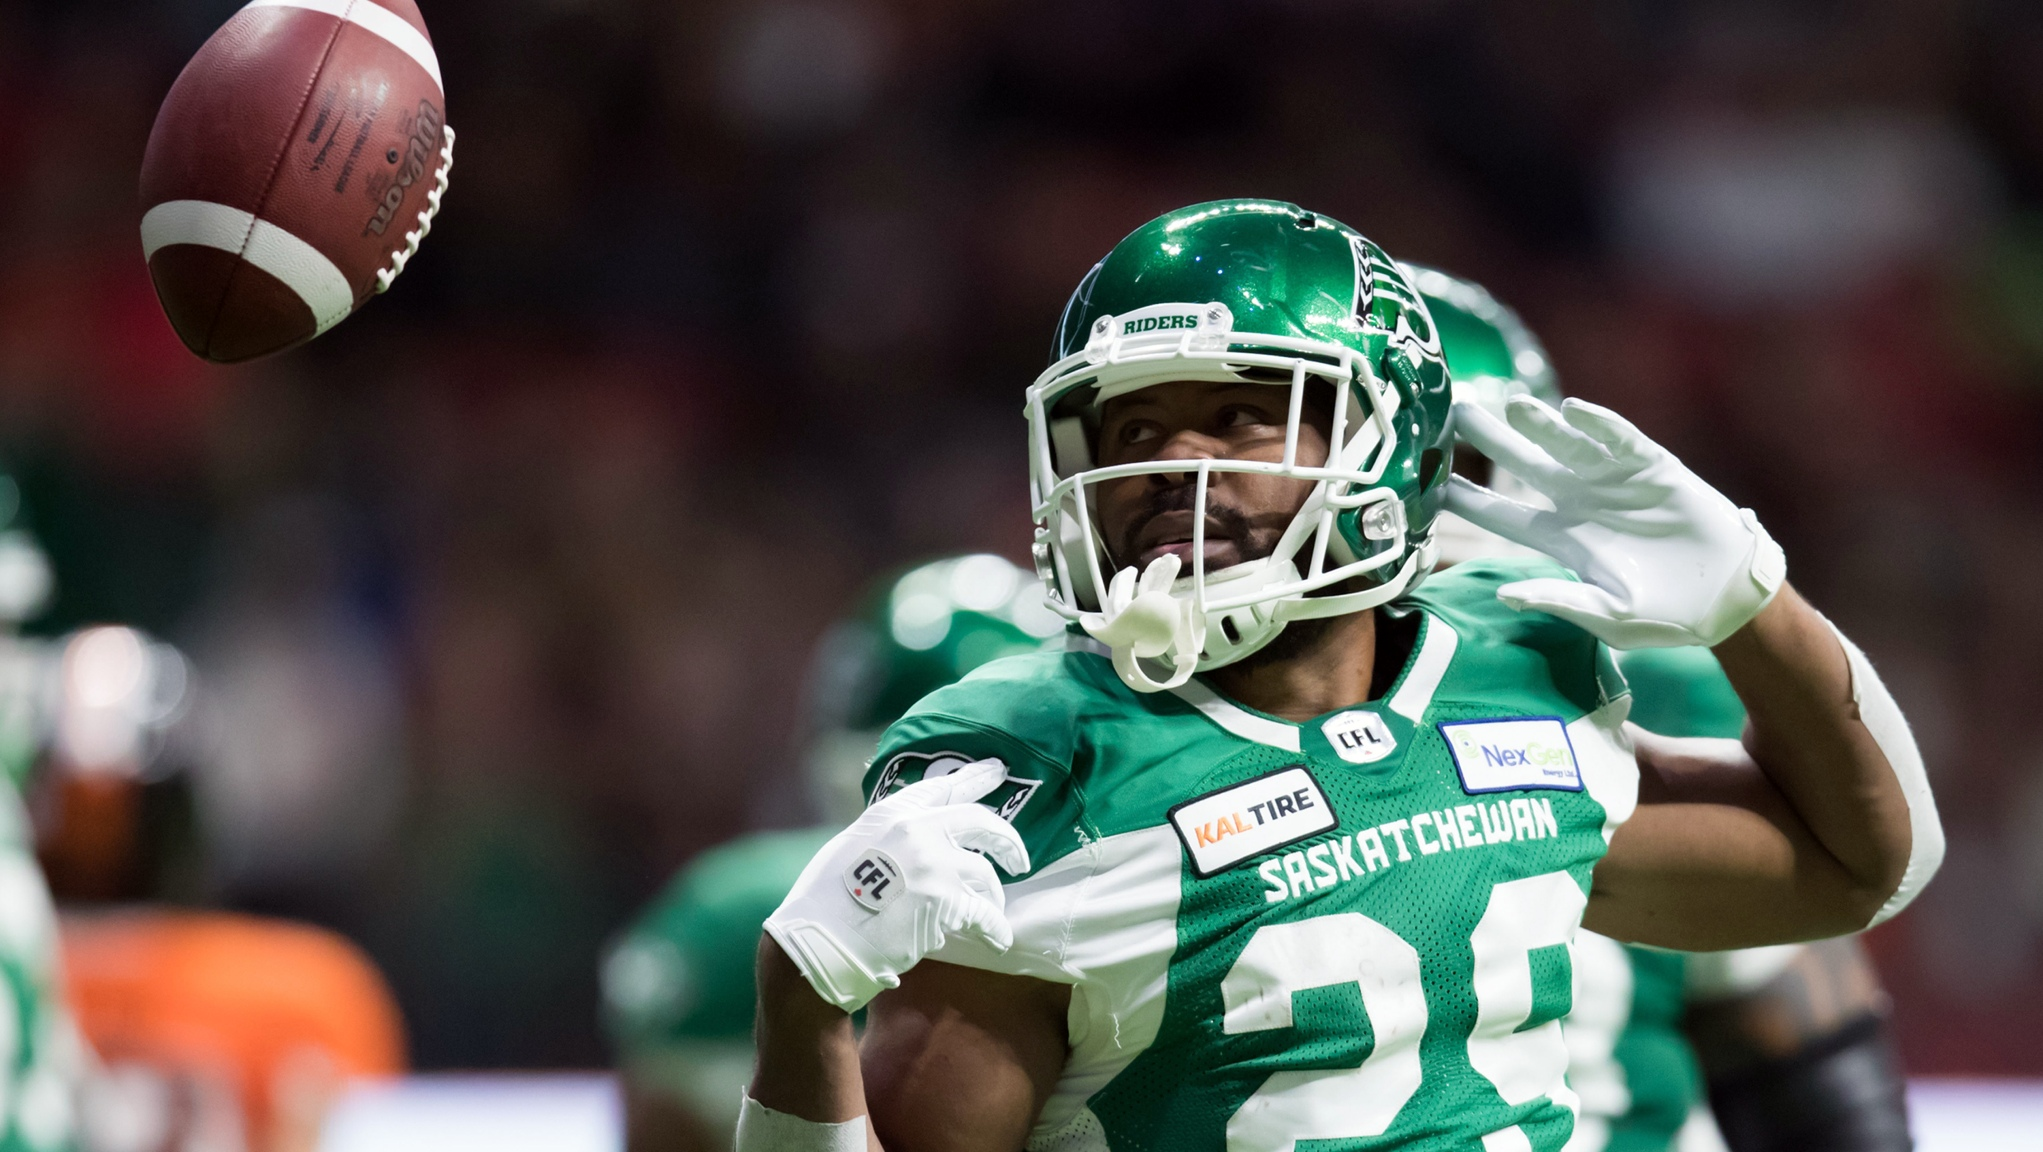 CFL Simulation: Riders are on the rise after latest win - CFL.ca